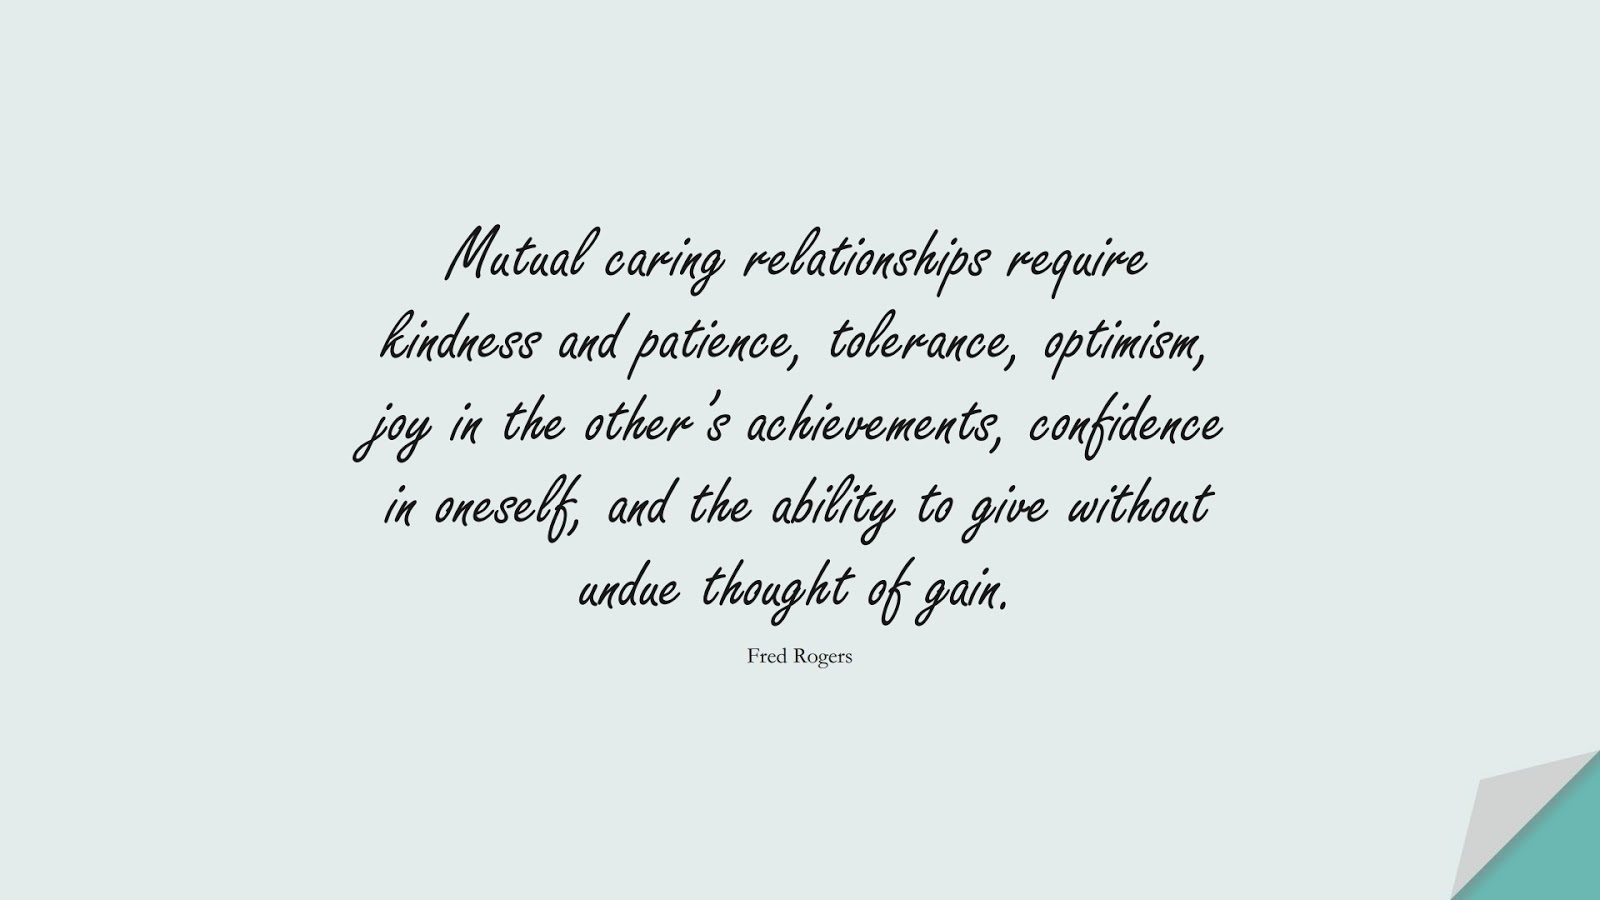 Mutual caring relationships require kindness and patience, tolerance, optimism, joy in the other's achievements, confidence in oneself, and the ability to give without undue thought of gain. (Fred Rogers);  #RelationshipQuotes